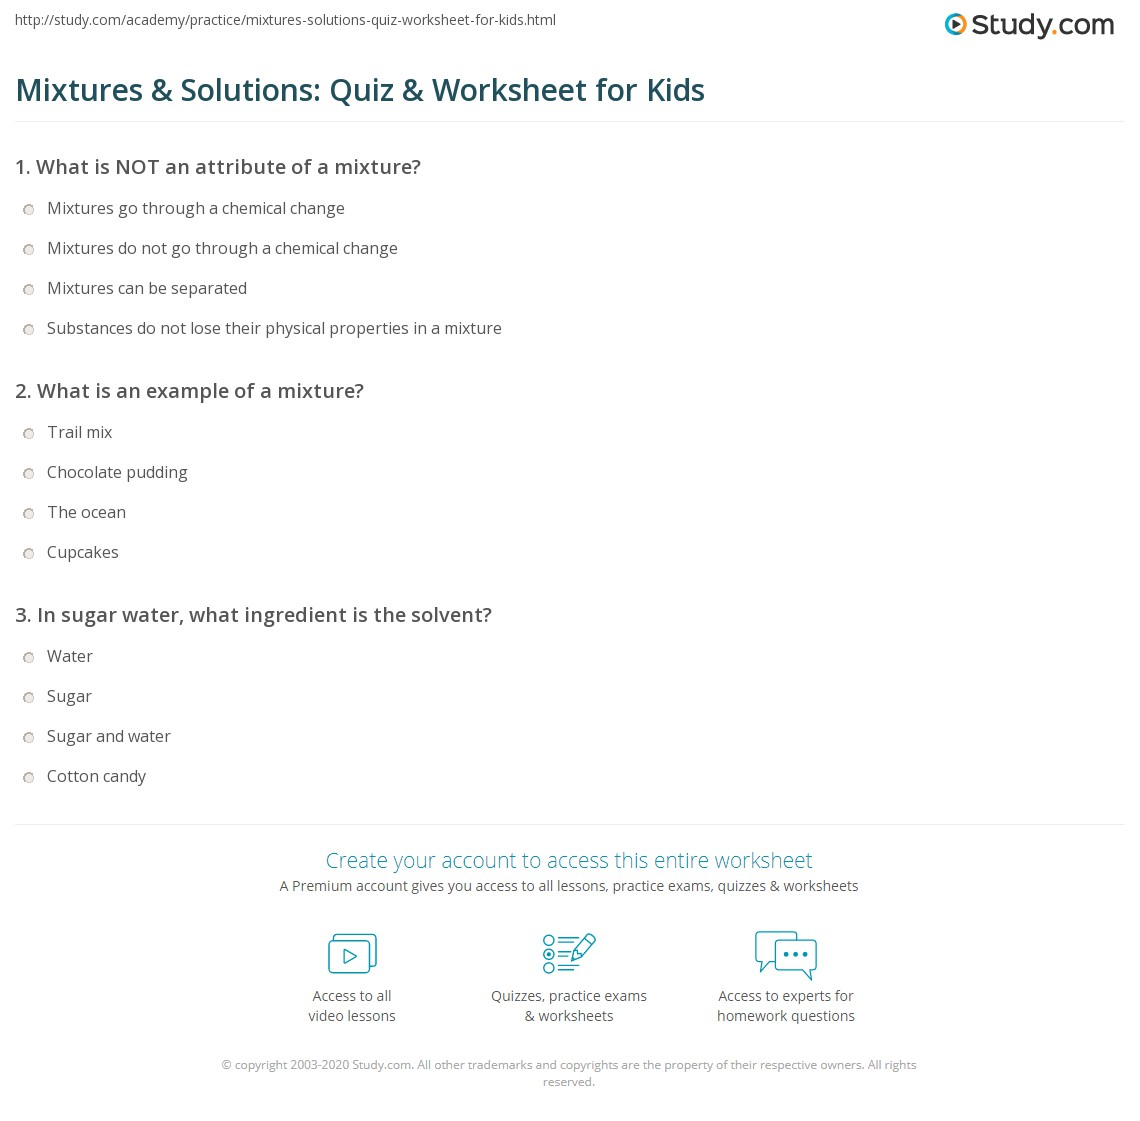 Worksheets Mixtures And Solutions Worksheets mixtures solutions quiz worksheet for kids study com print lesson definitions examples worksheet